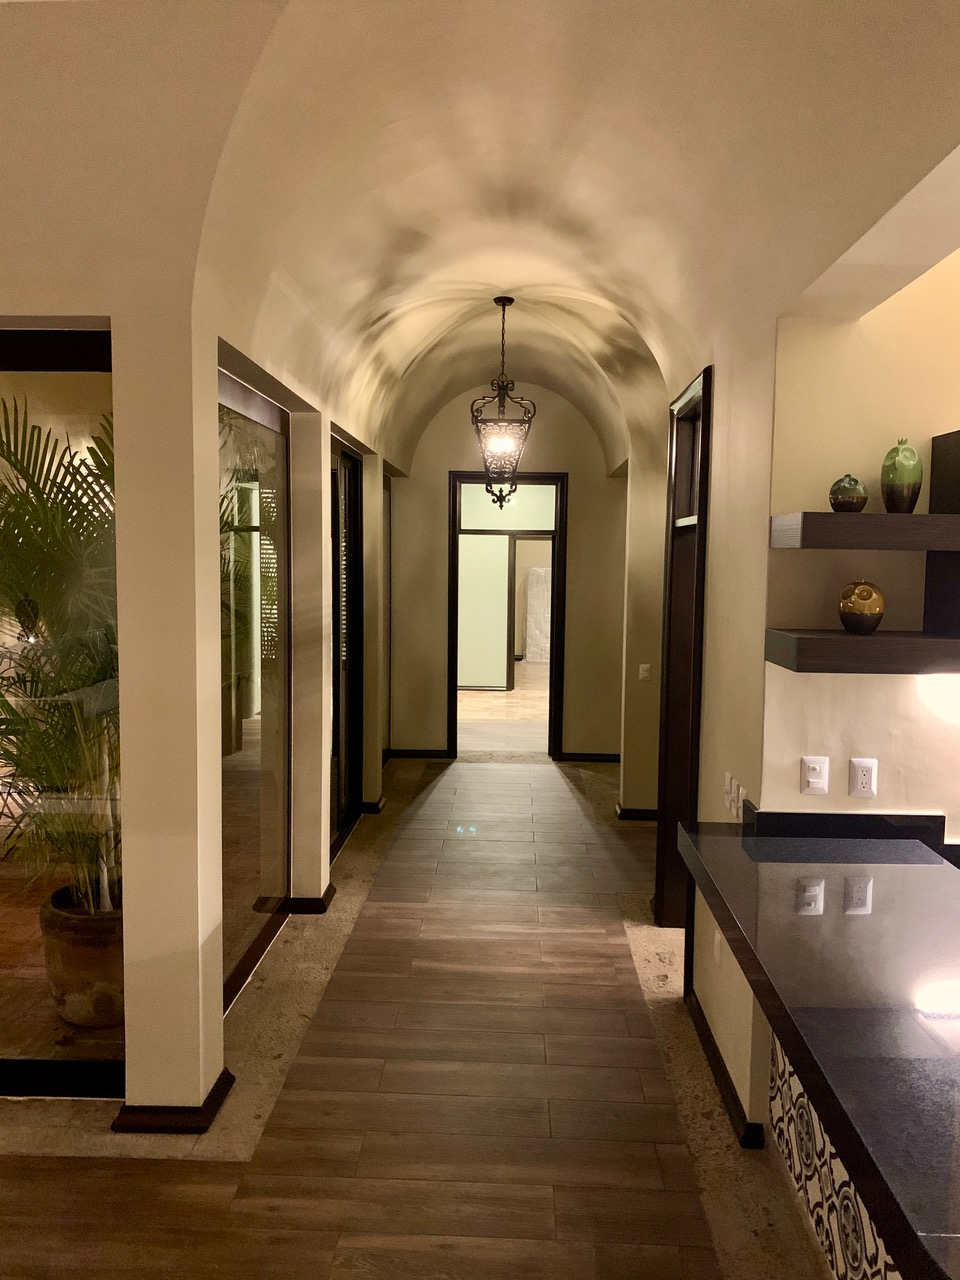 Hallway to bedrooms at night.